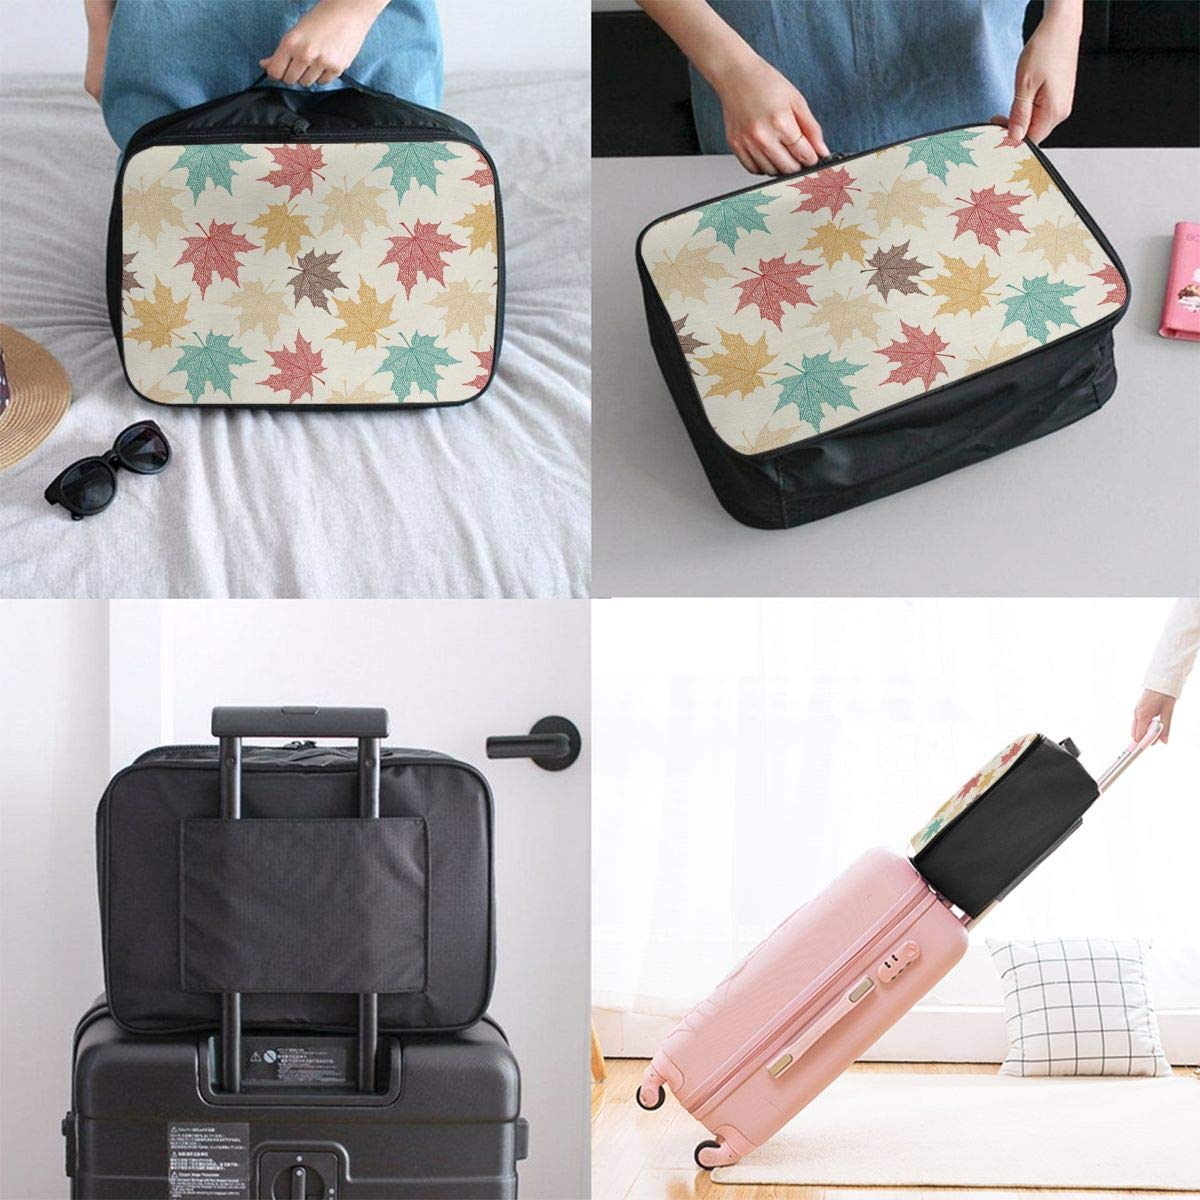 ADGAI Pattern Colored Maple Leaves Canvas Travel Weekender Bag,Fashion Custom Lightweight Large Capacity Portable Luggage Bag,Suitcase Trolley Bag